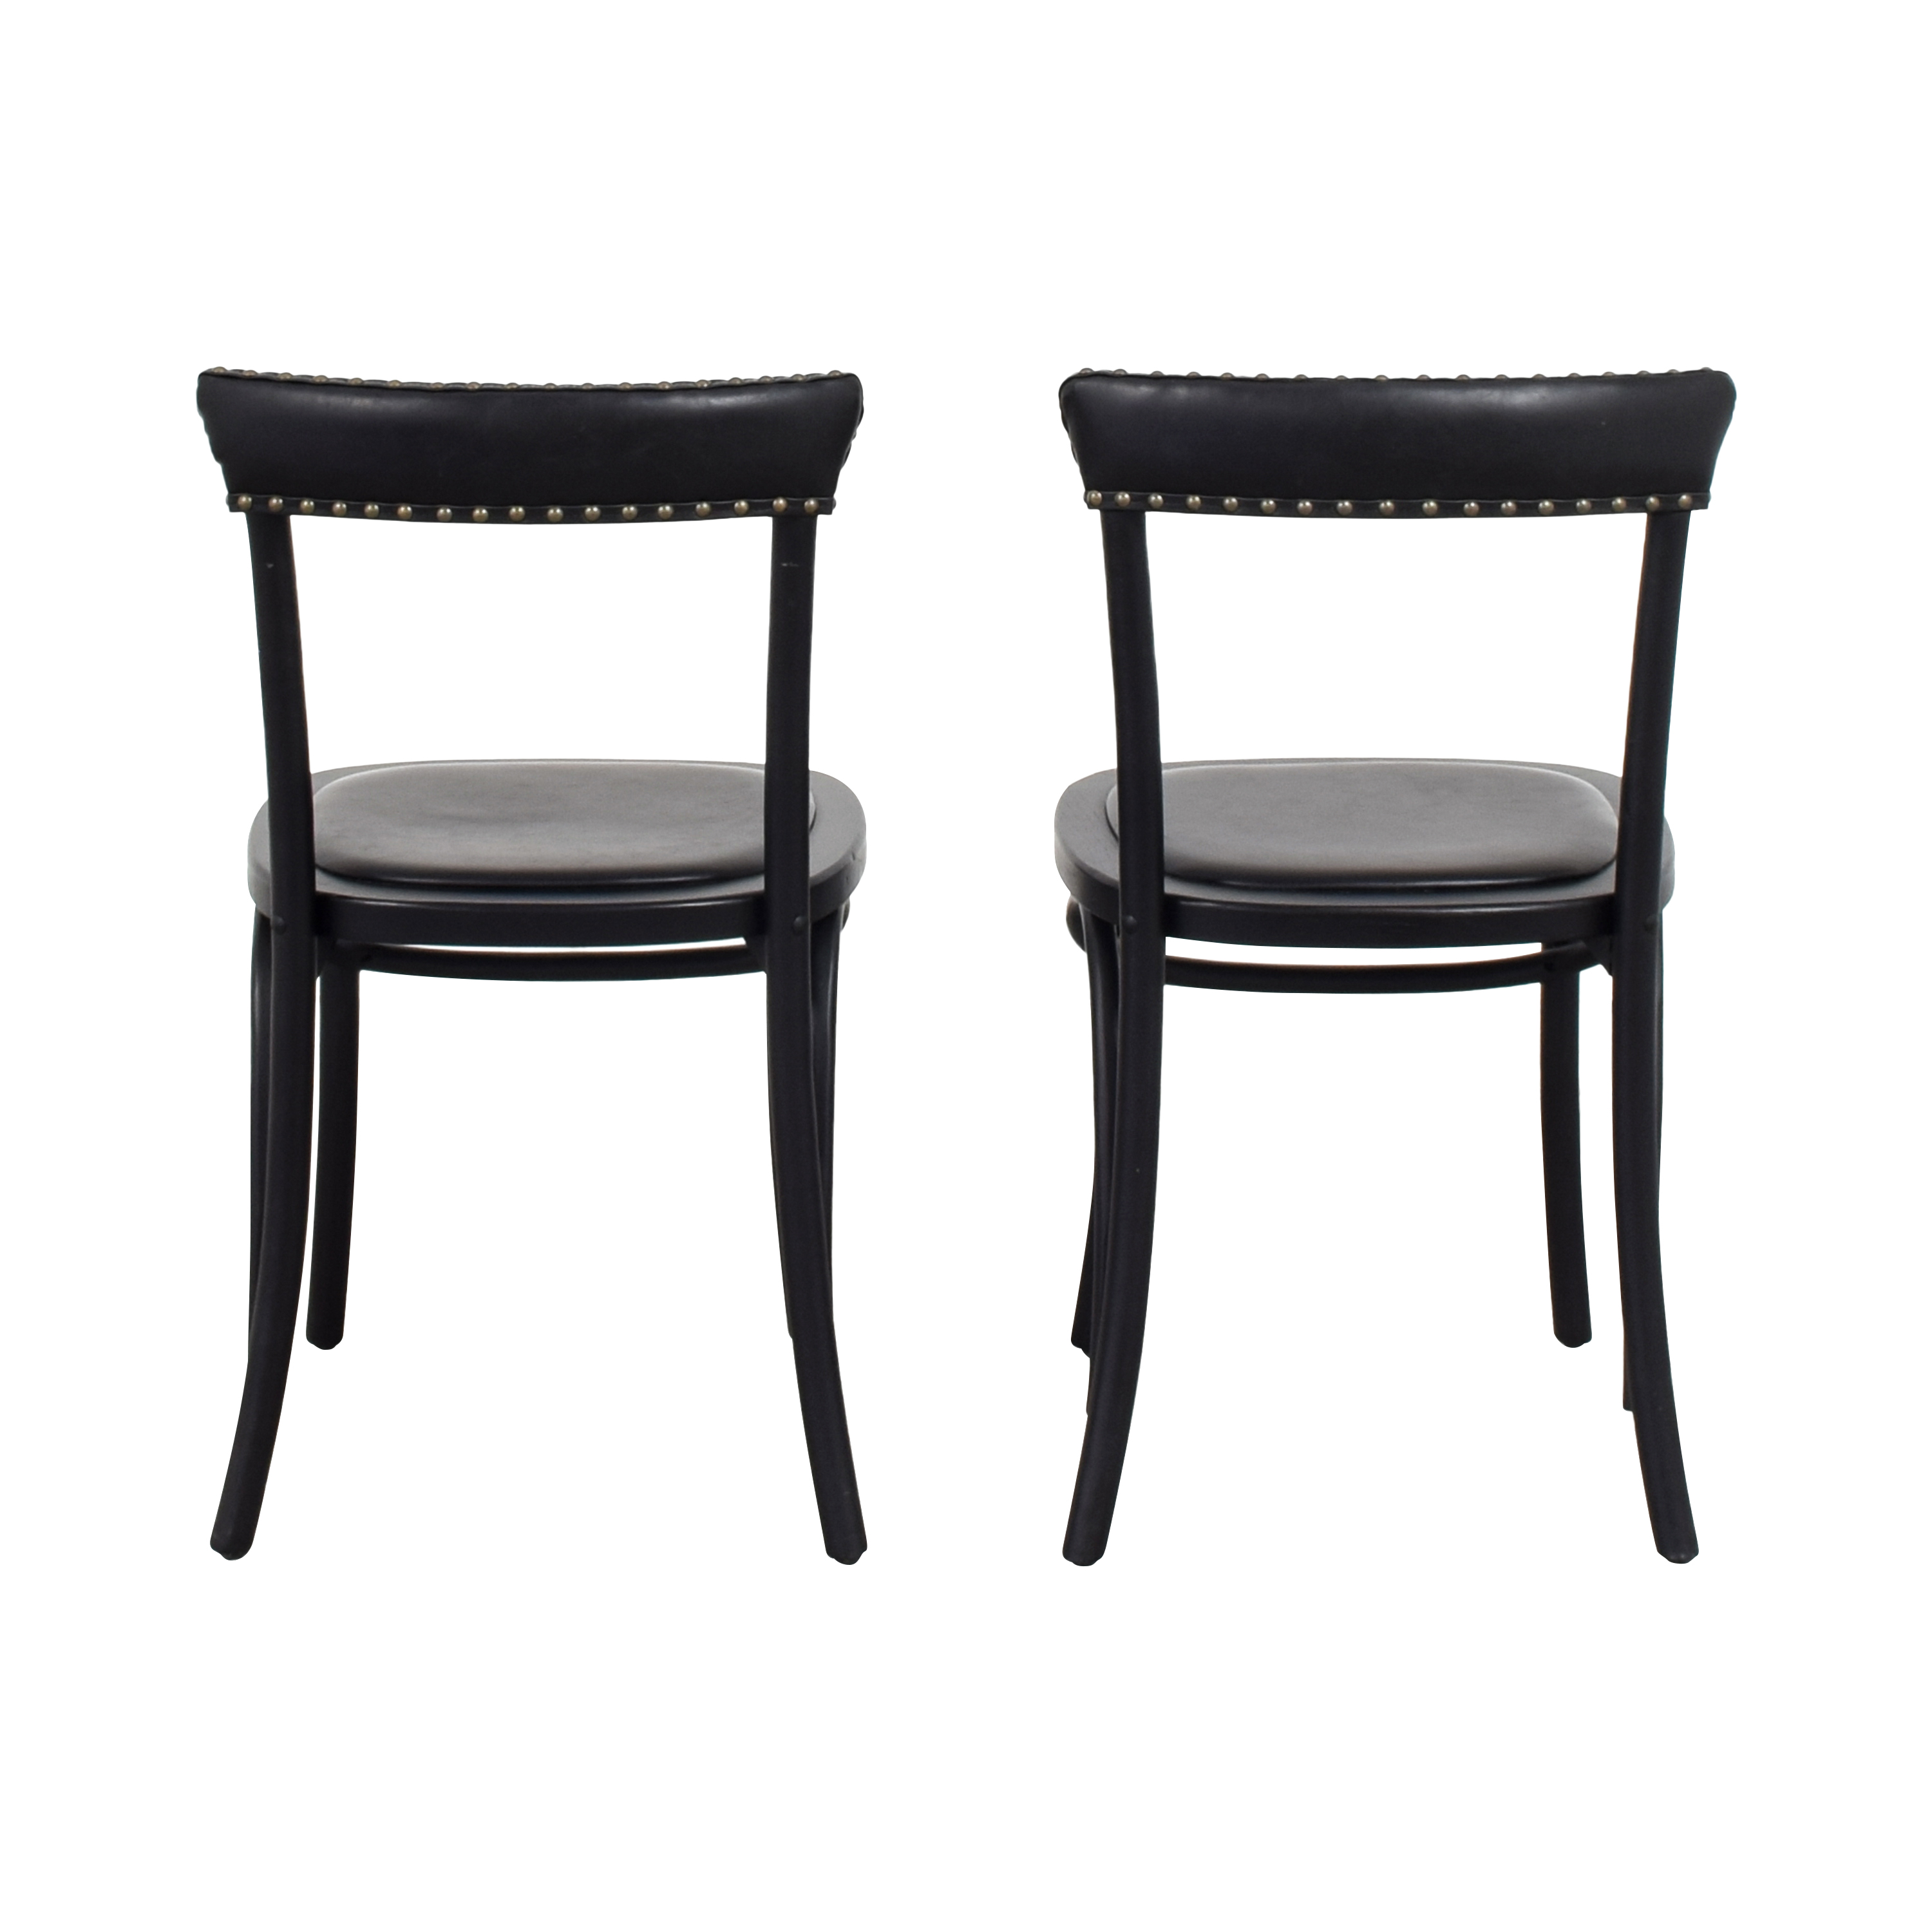 buy Pottery Barn Lucas Bistro Dining Chairs Pottery Barn Dining Chairs